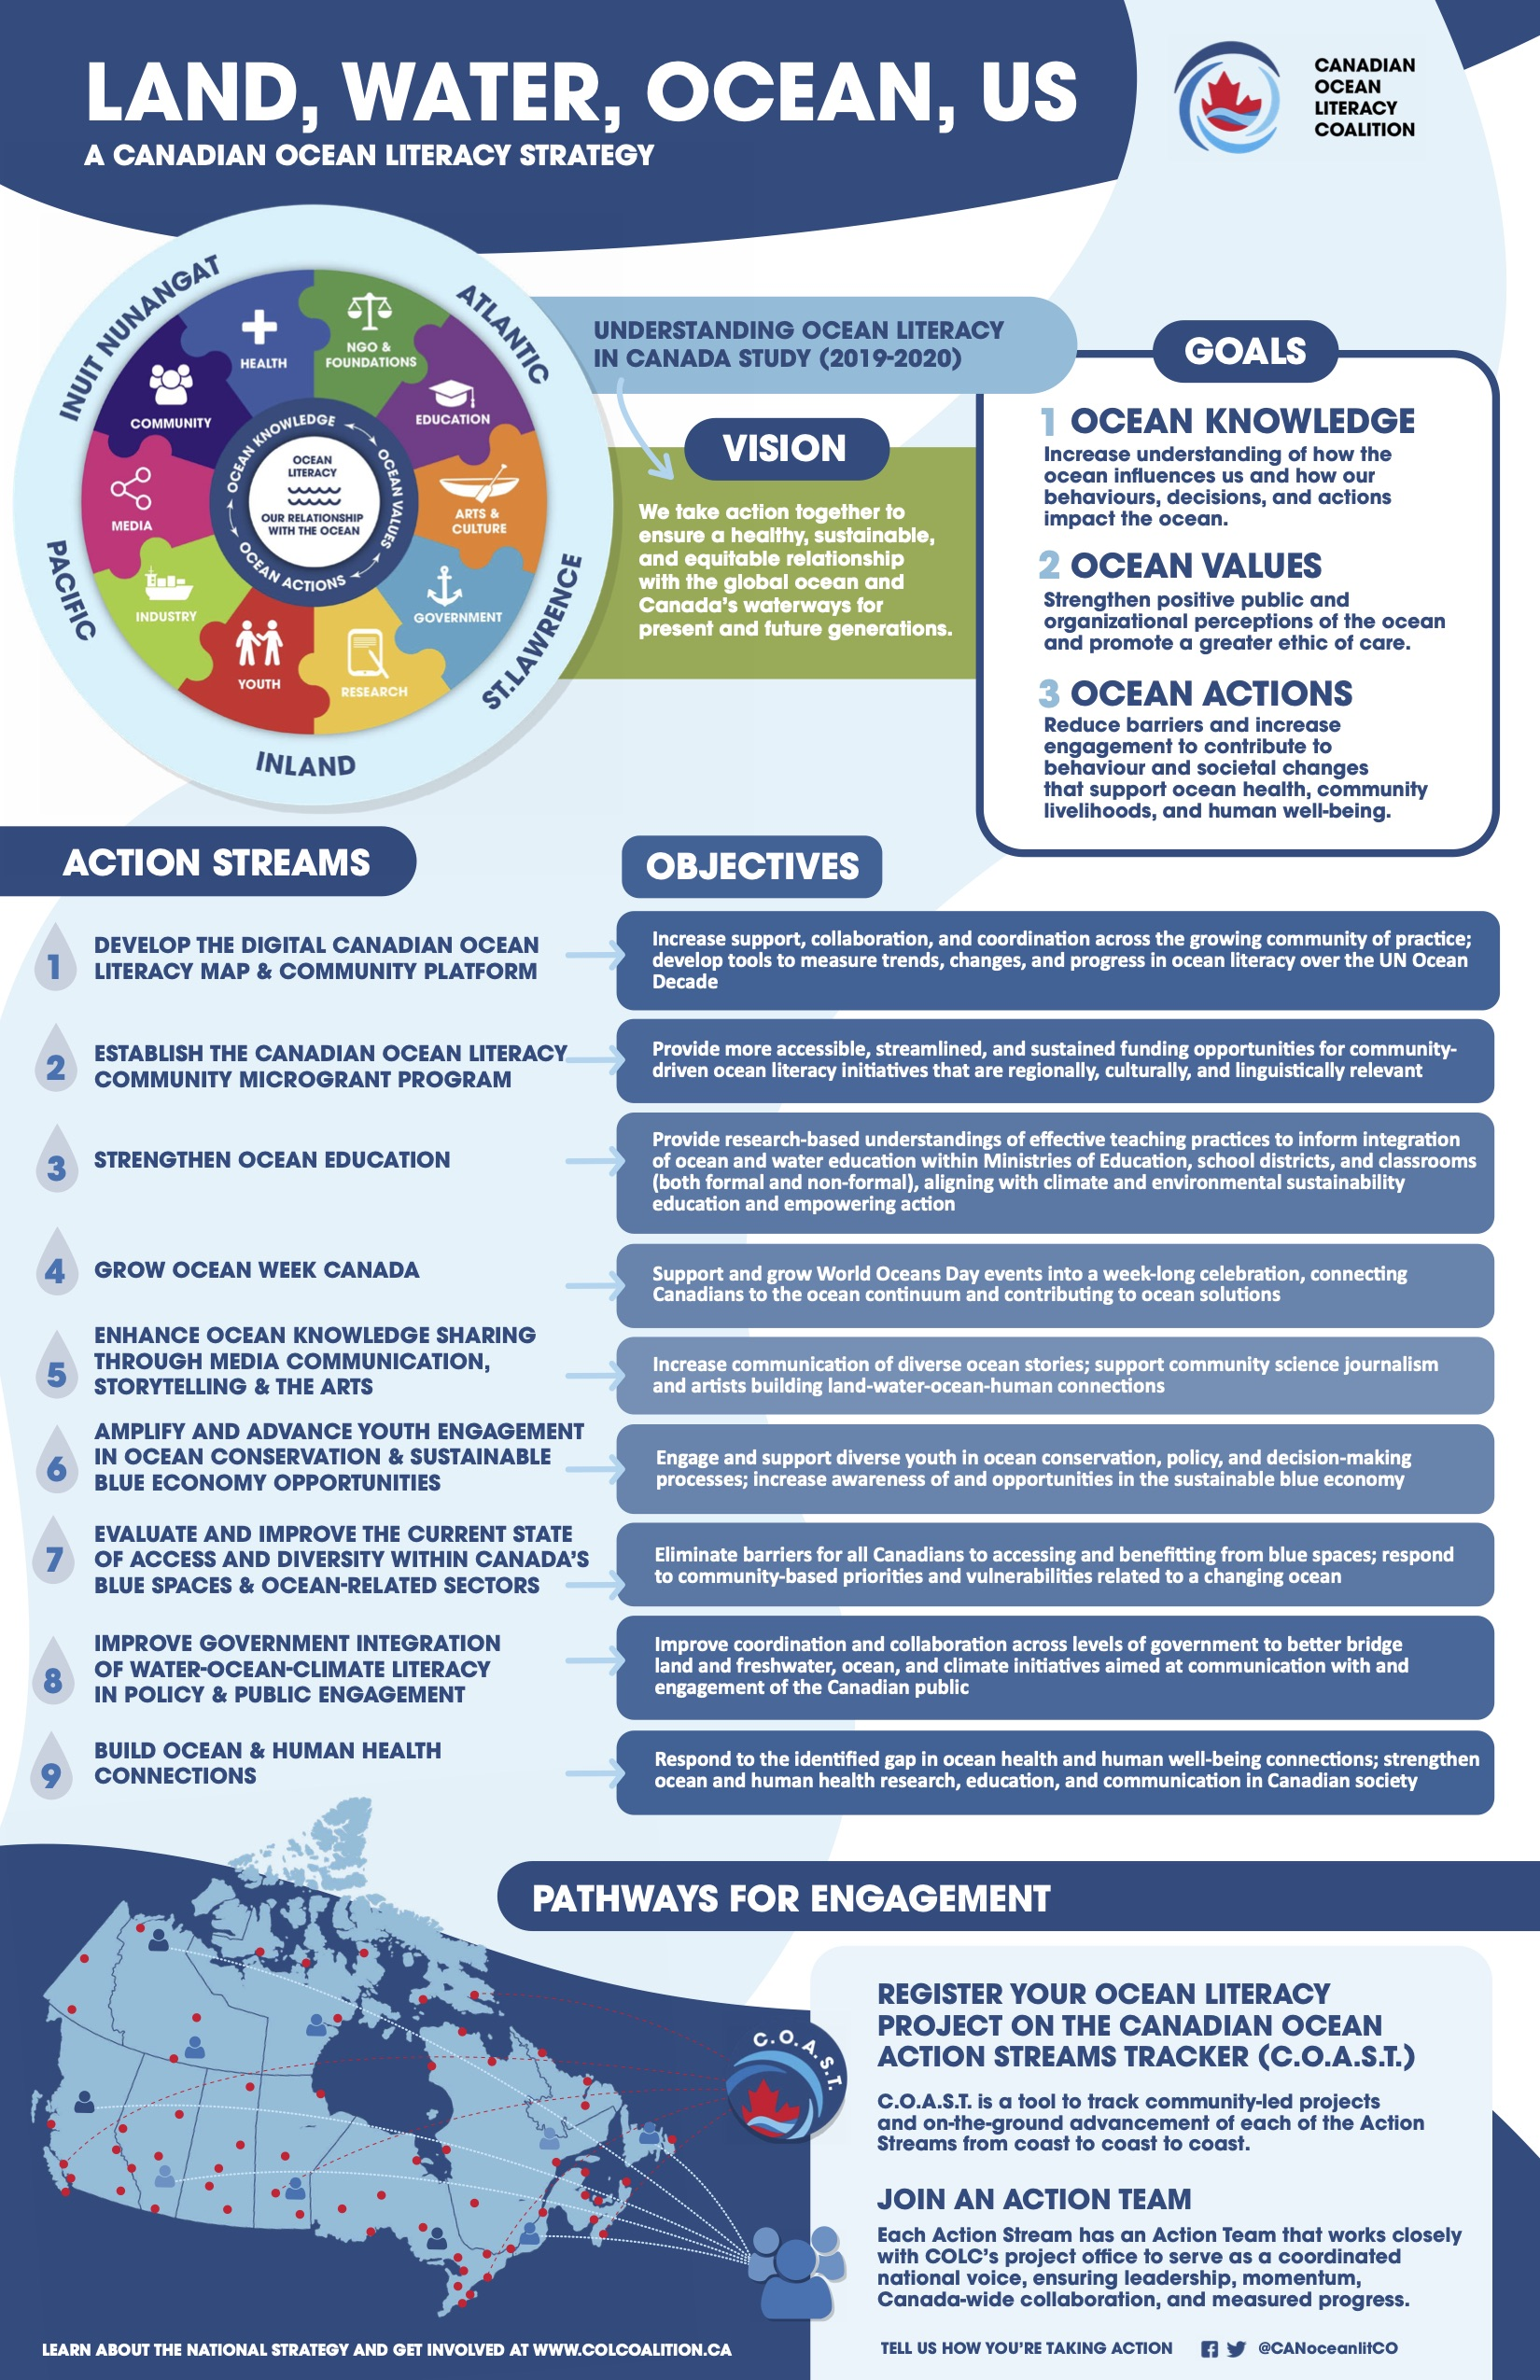 Land_Water_Ocean_Us_A_Canadian_Ocean_Literacy_Strategy_Poster_March_2021